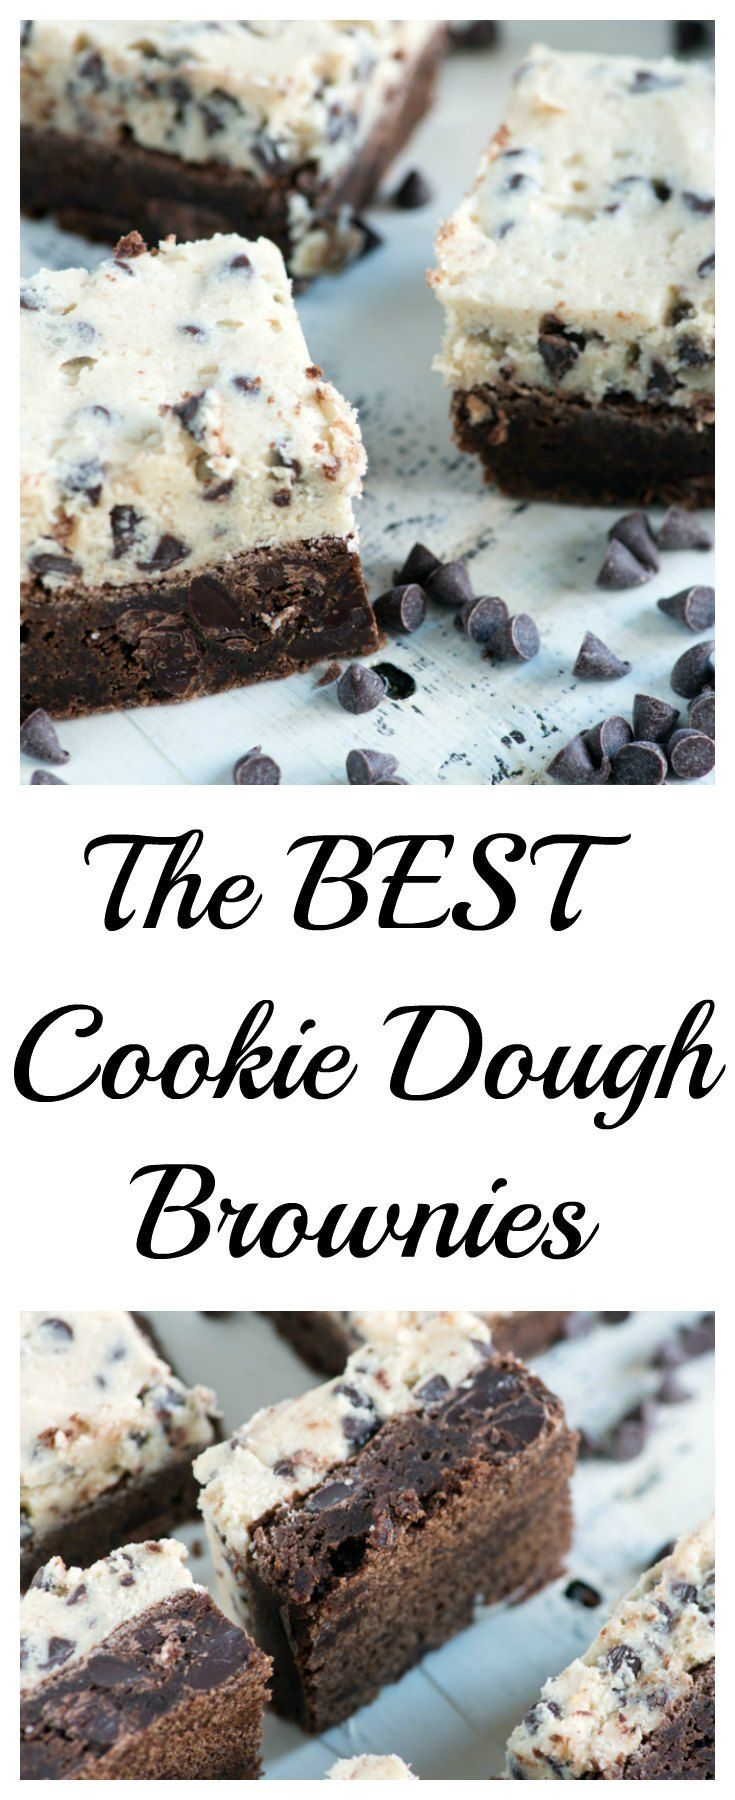 Cookie dough brownies are like getting two desserts in one.  A rich  fudgy brownie with a cookie dough frosting, perfect when you can't decide between a cookie or a brownie.